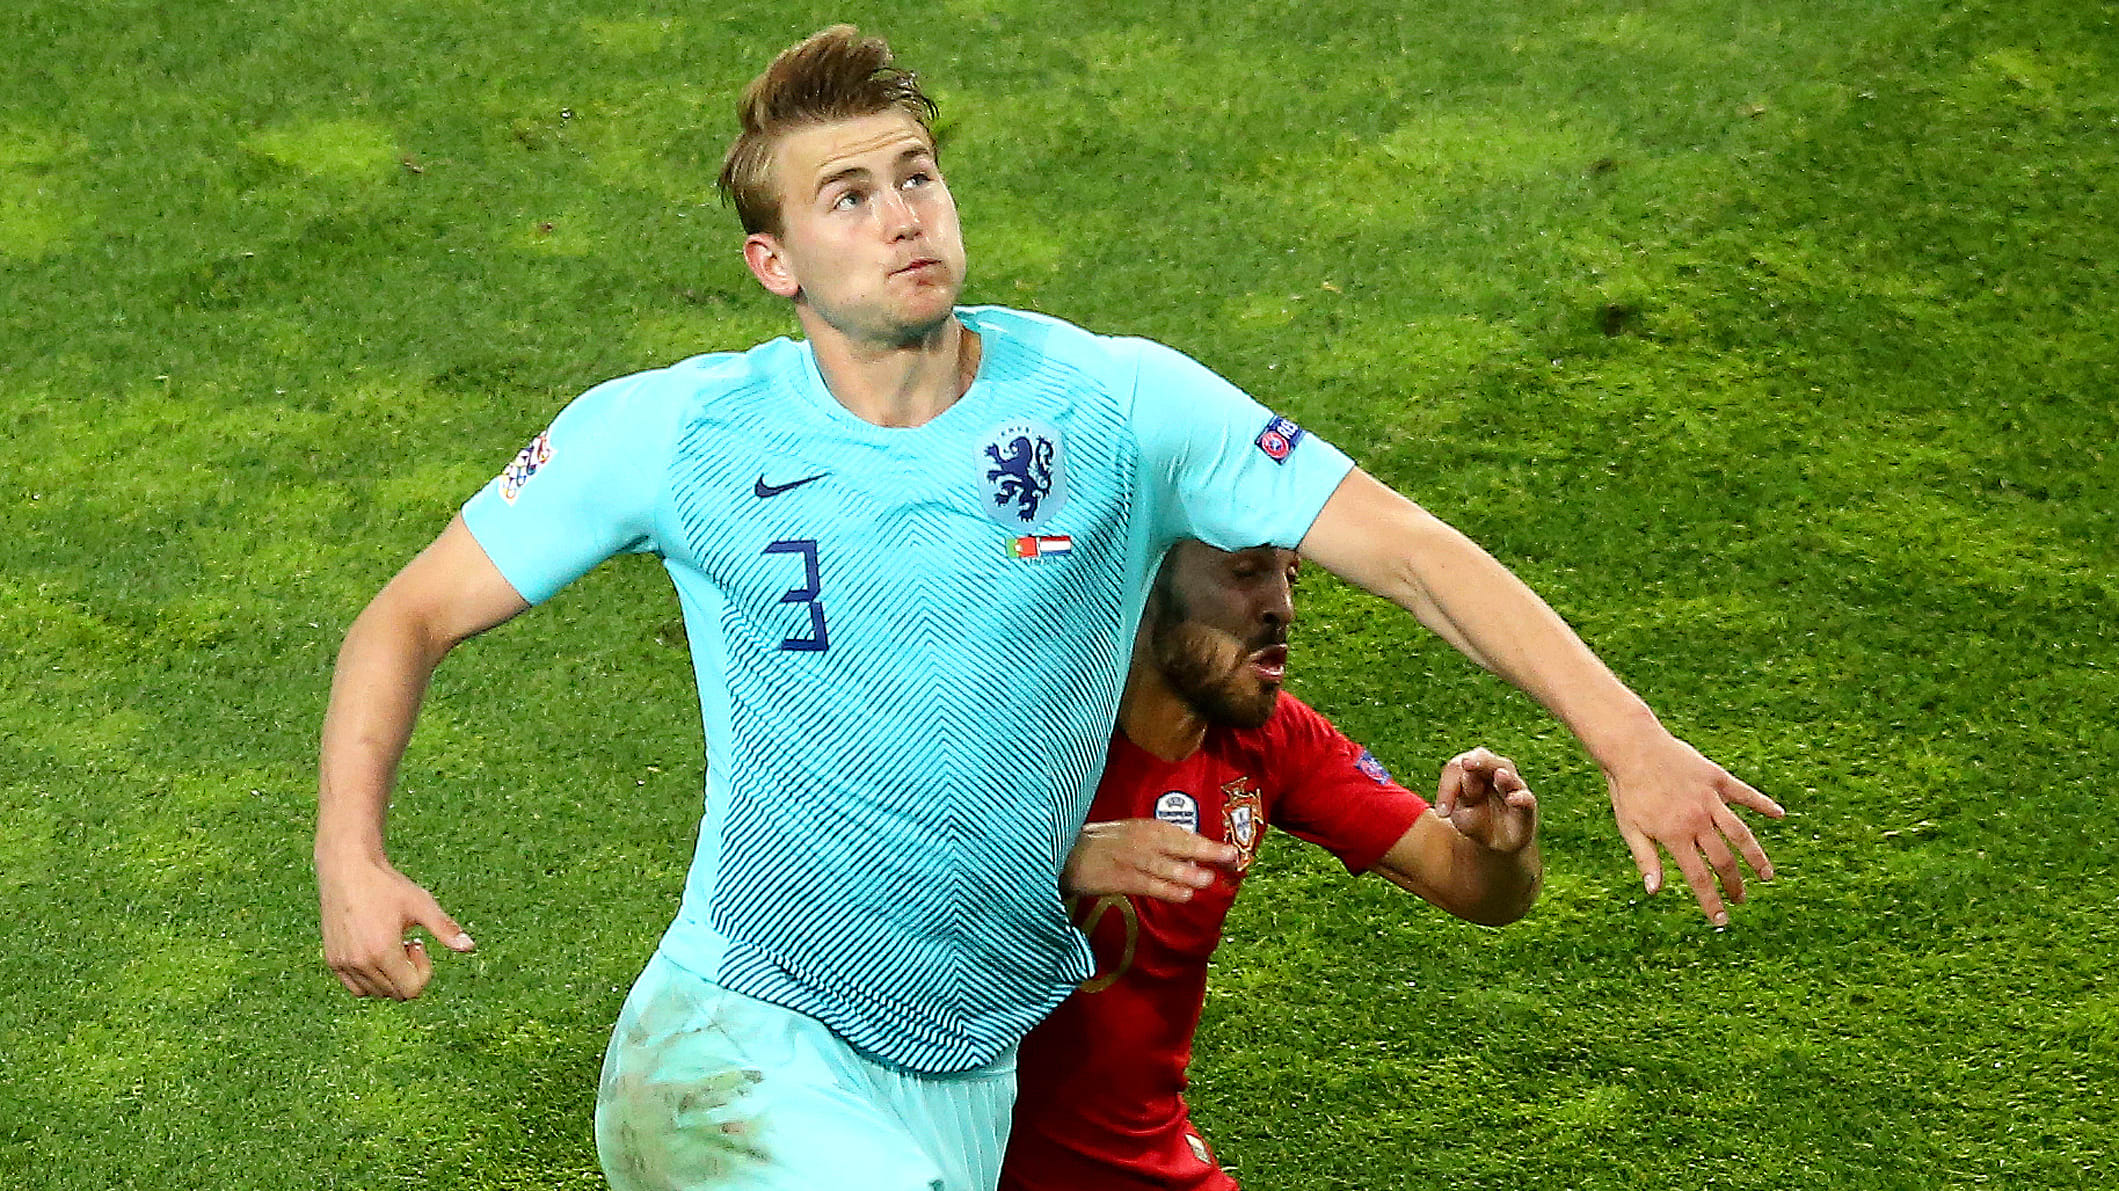 PORTO, PORTUGAL - JUNE 09: Matthijs de Ligt of the Netherlands battles for possession with Bernardo Silva of Portugal during the UEFA Nations League Final between Portugal and the Netherlands at Estadio do Dragao on June 09, 2019 in Porto, Portugal. (Photo by Jan Kruger/Getty Images)